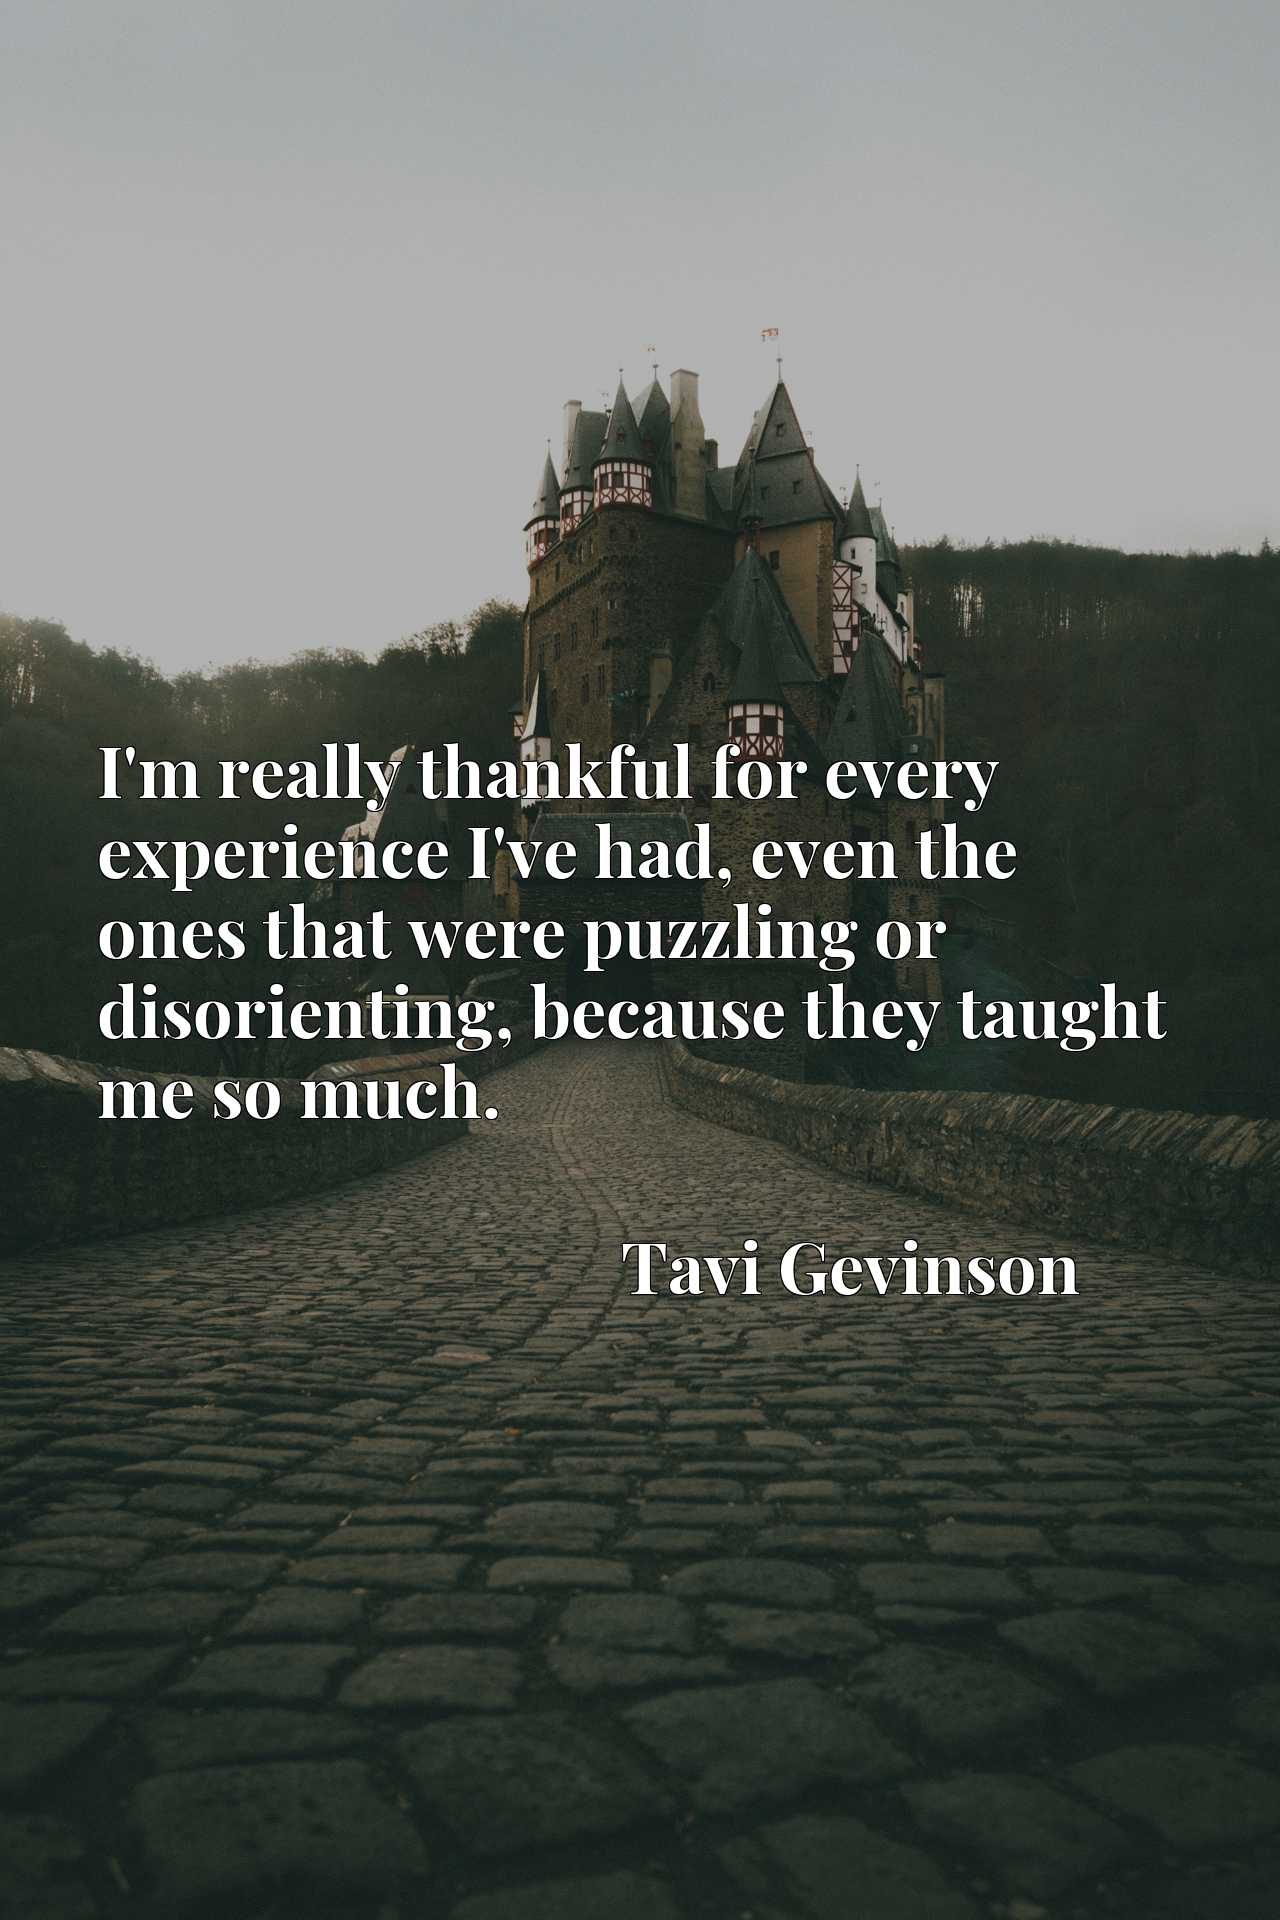 I'm really thankful for every experience I've had, even the ones that were puzzling or disorienting, because they taught me so much.